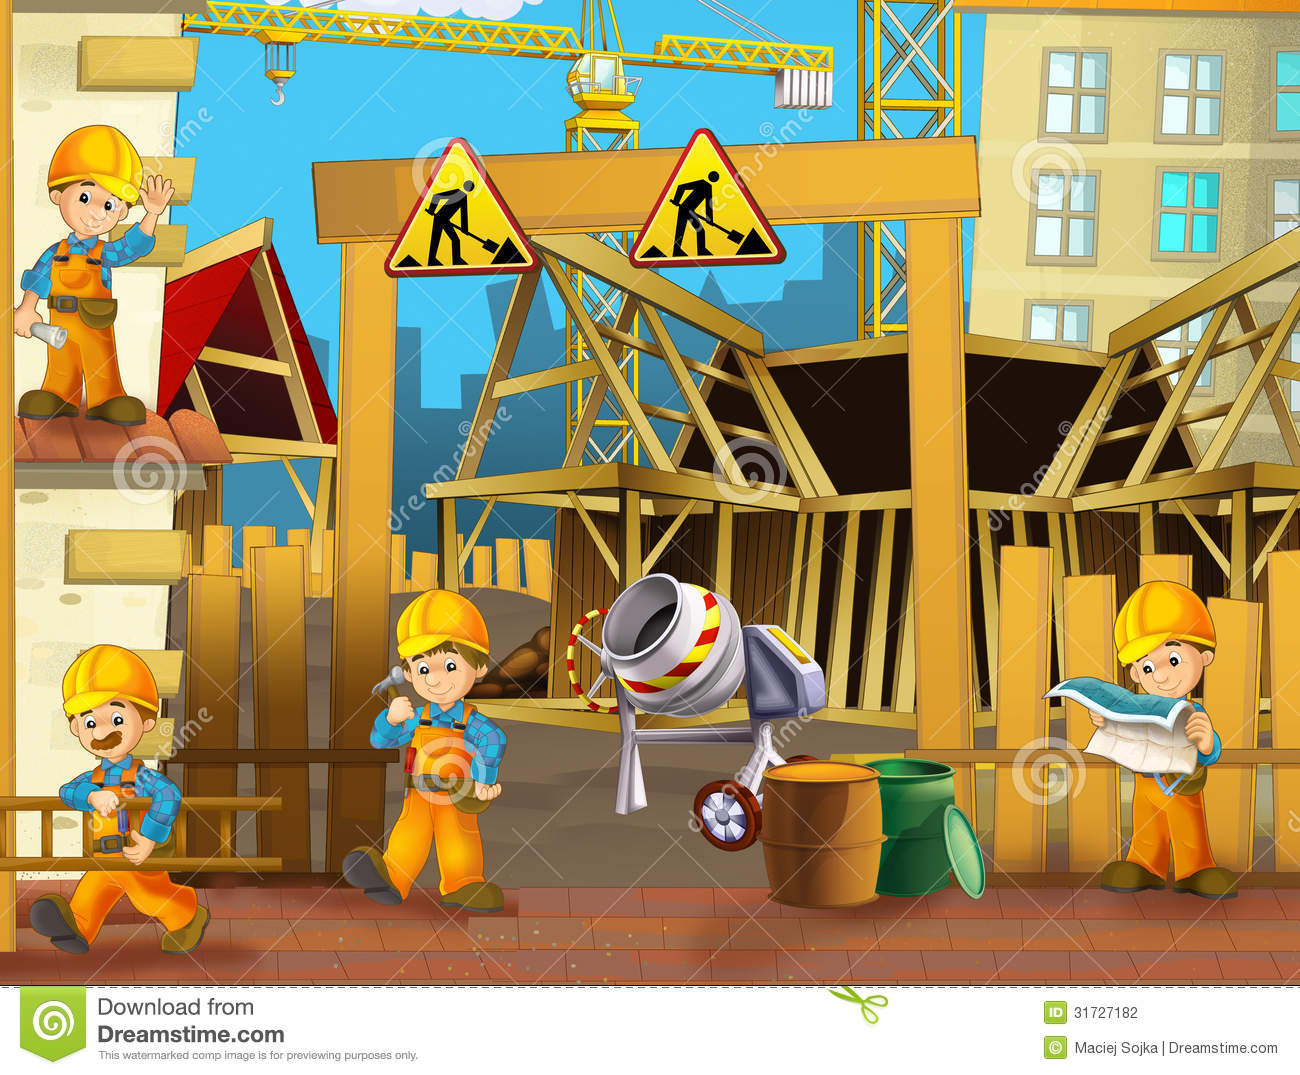 Building construction site clipart.